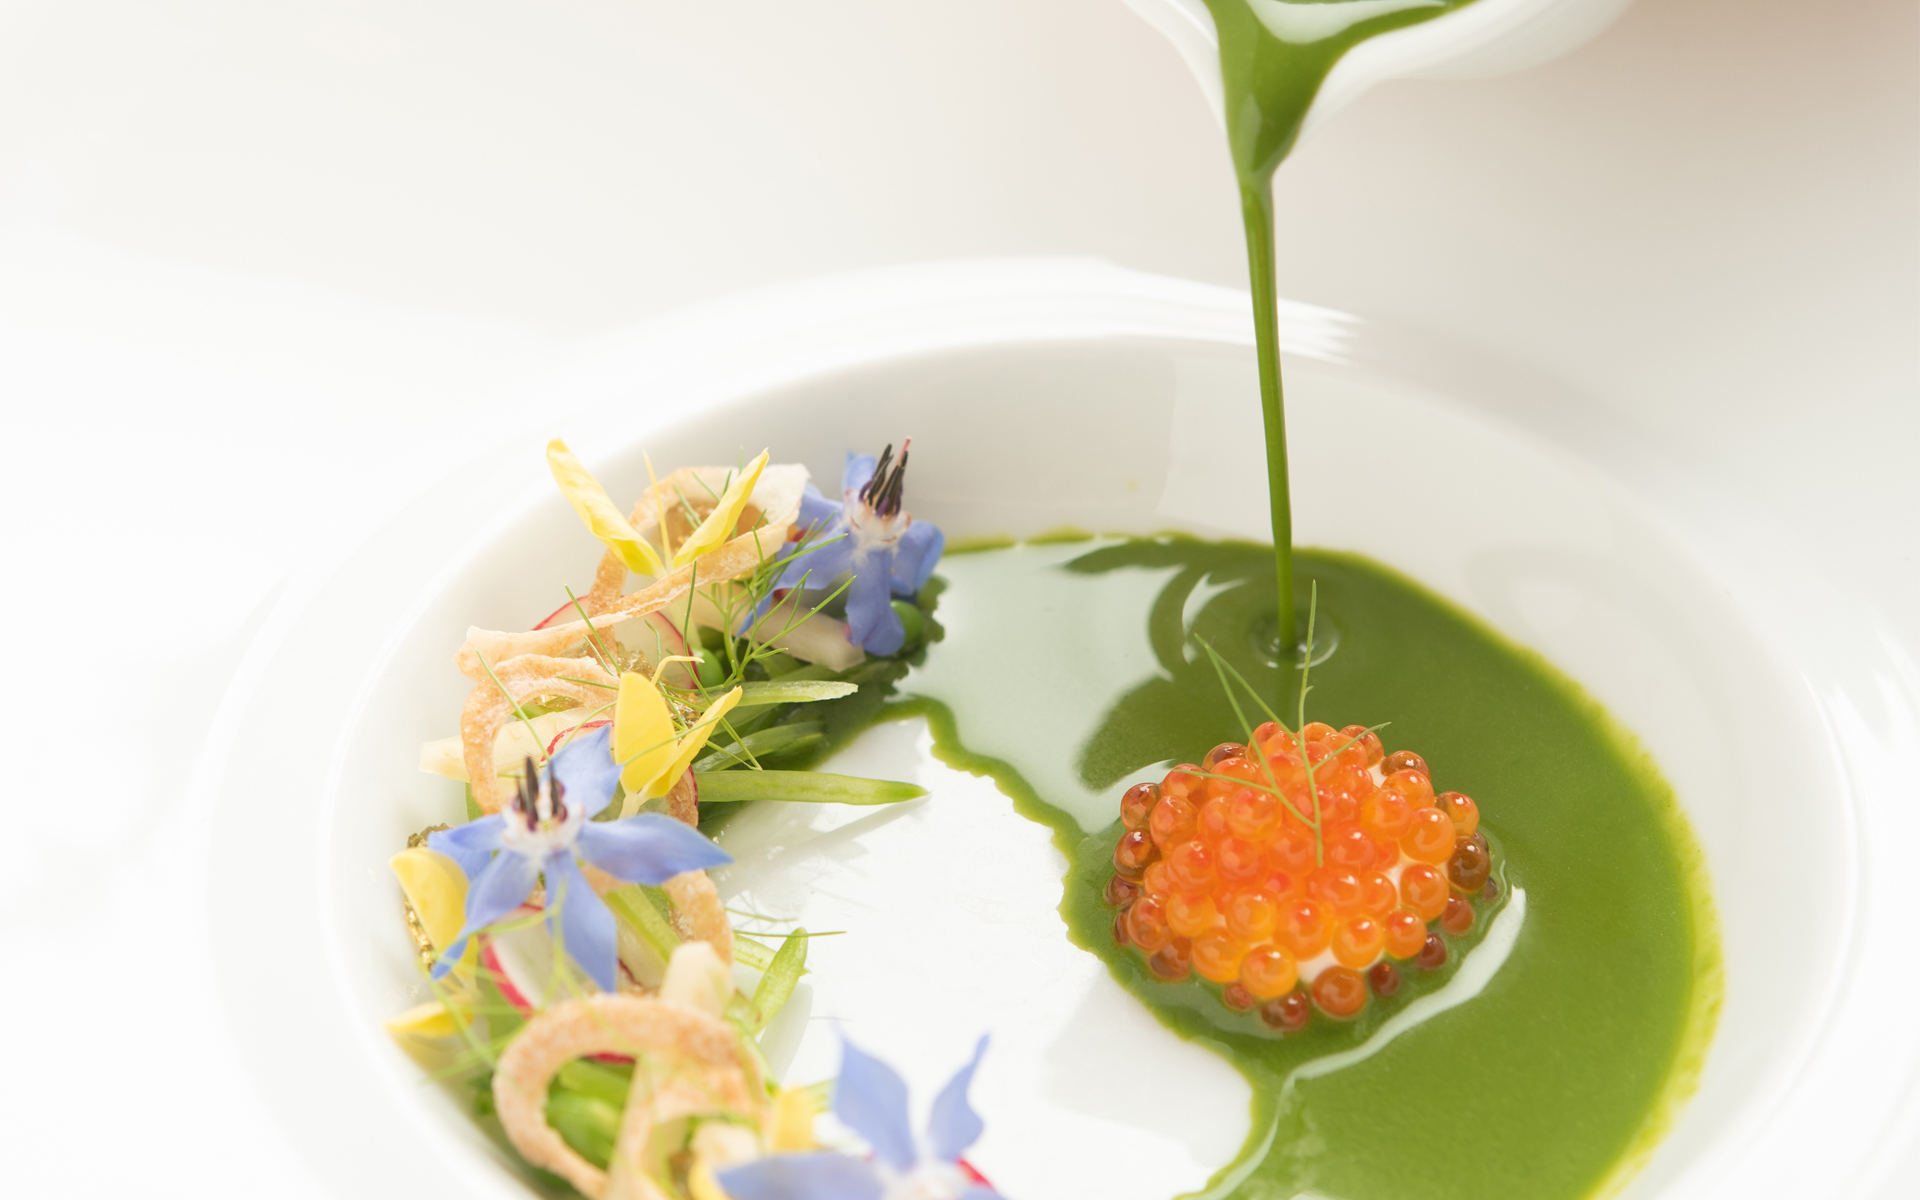 Sugar Snap Pea Veloute